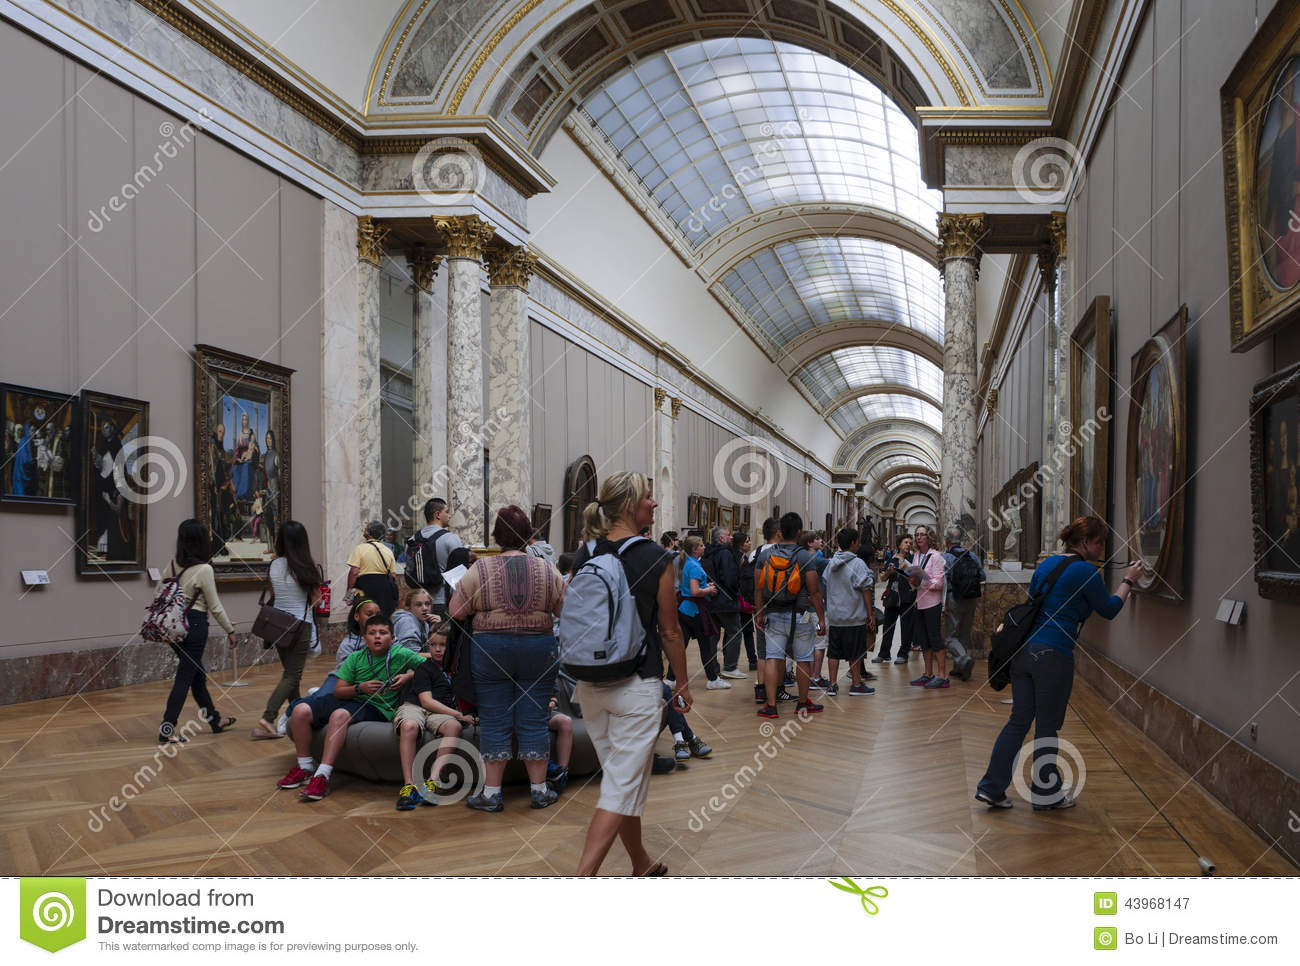 15 Best The Louvre Inside Pictures And Images